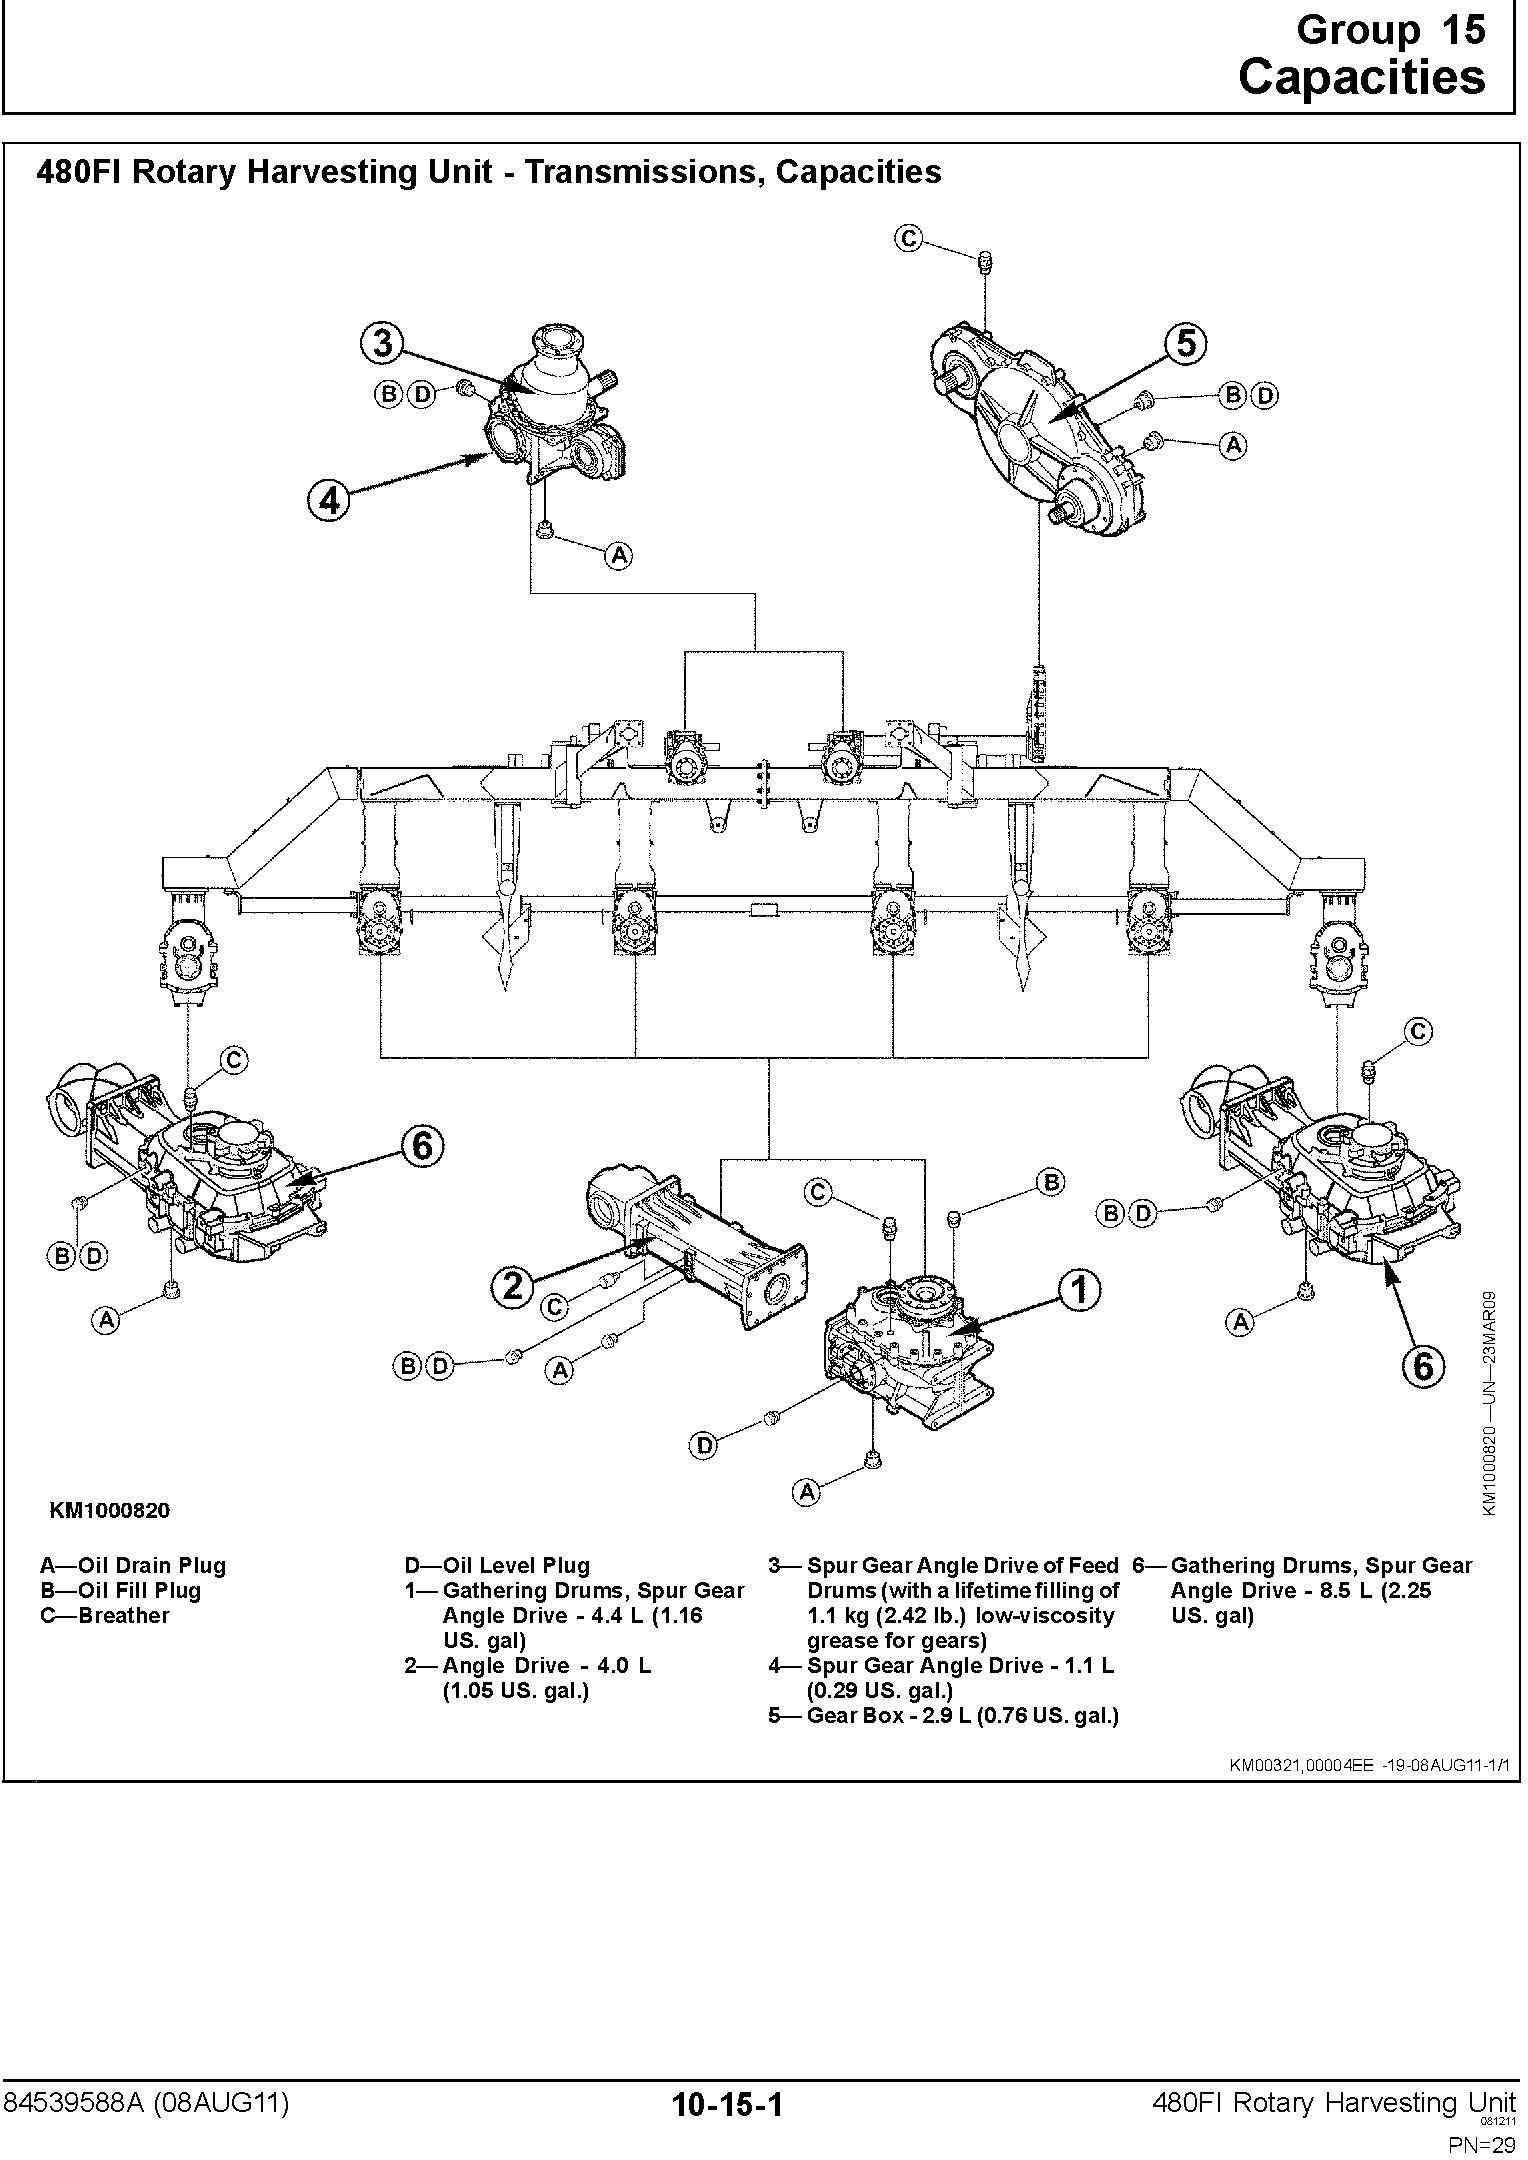 New Holland 480FI Row Independent Corn Head Service Manual - 2